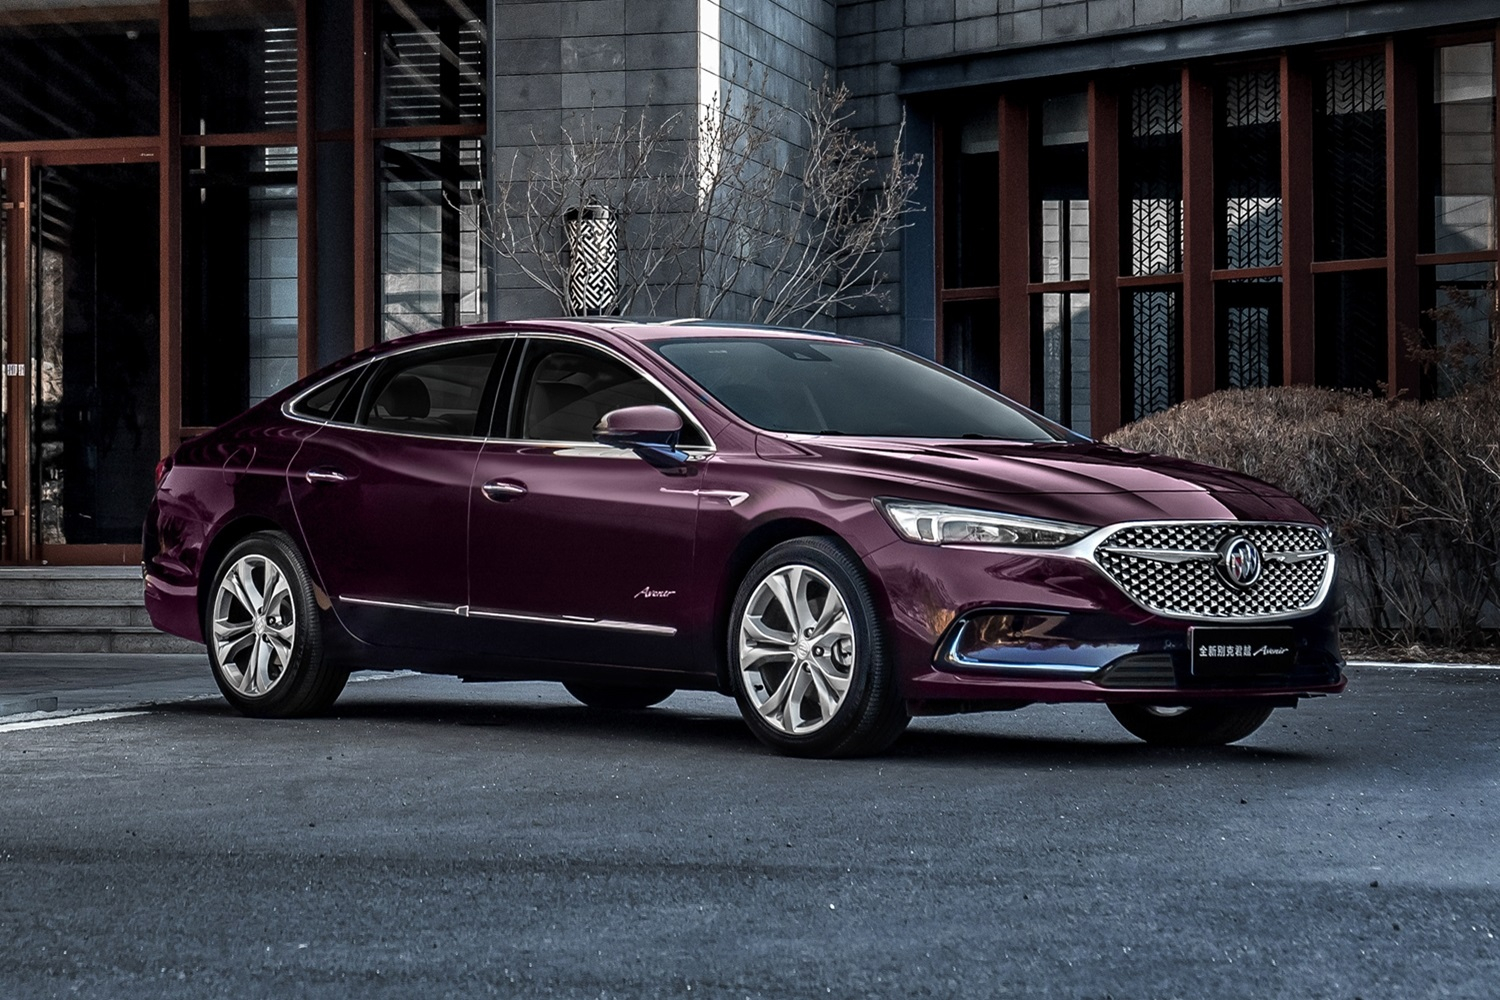 2021 Buick Lacrosse Gets More Refined Than Ever | Gm Authority 2021 Buick Lacrosse Price, Interior, Specs